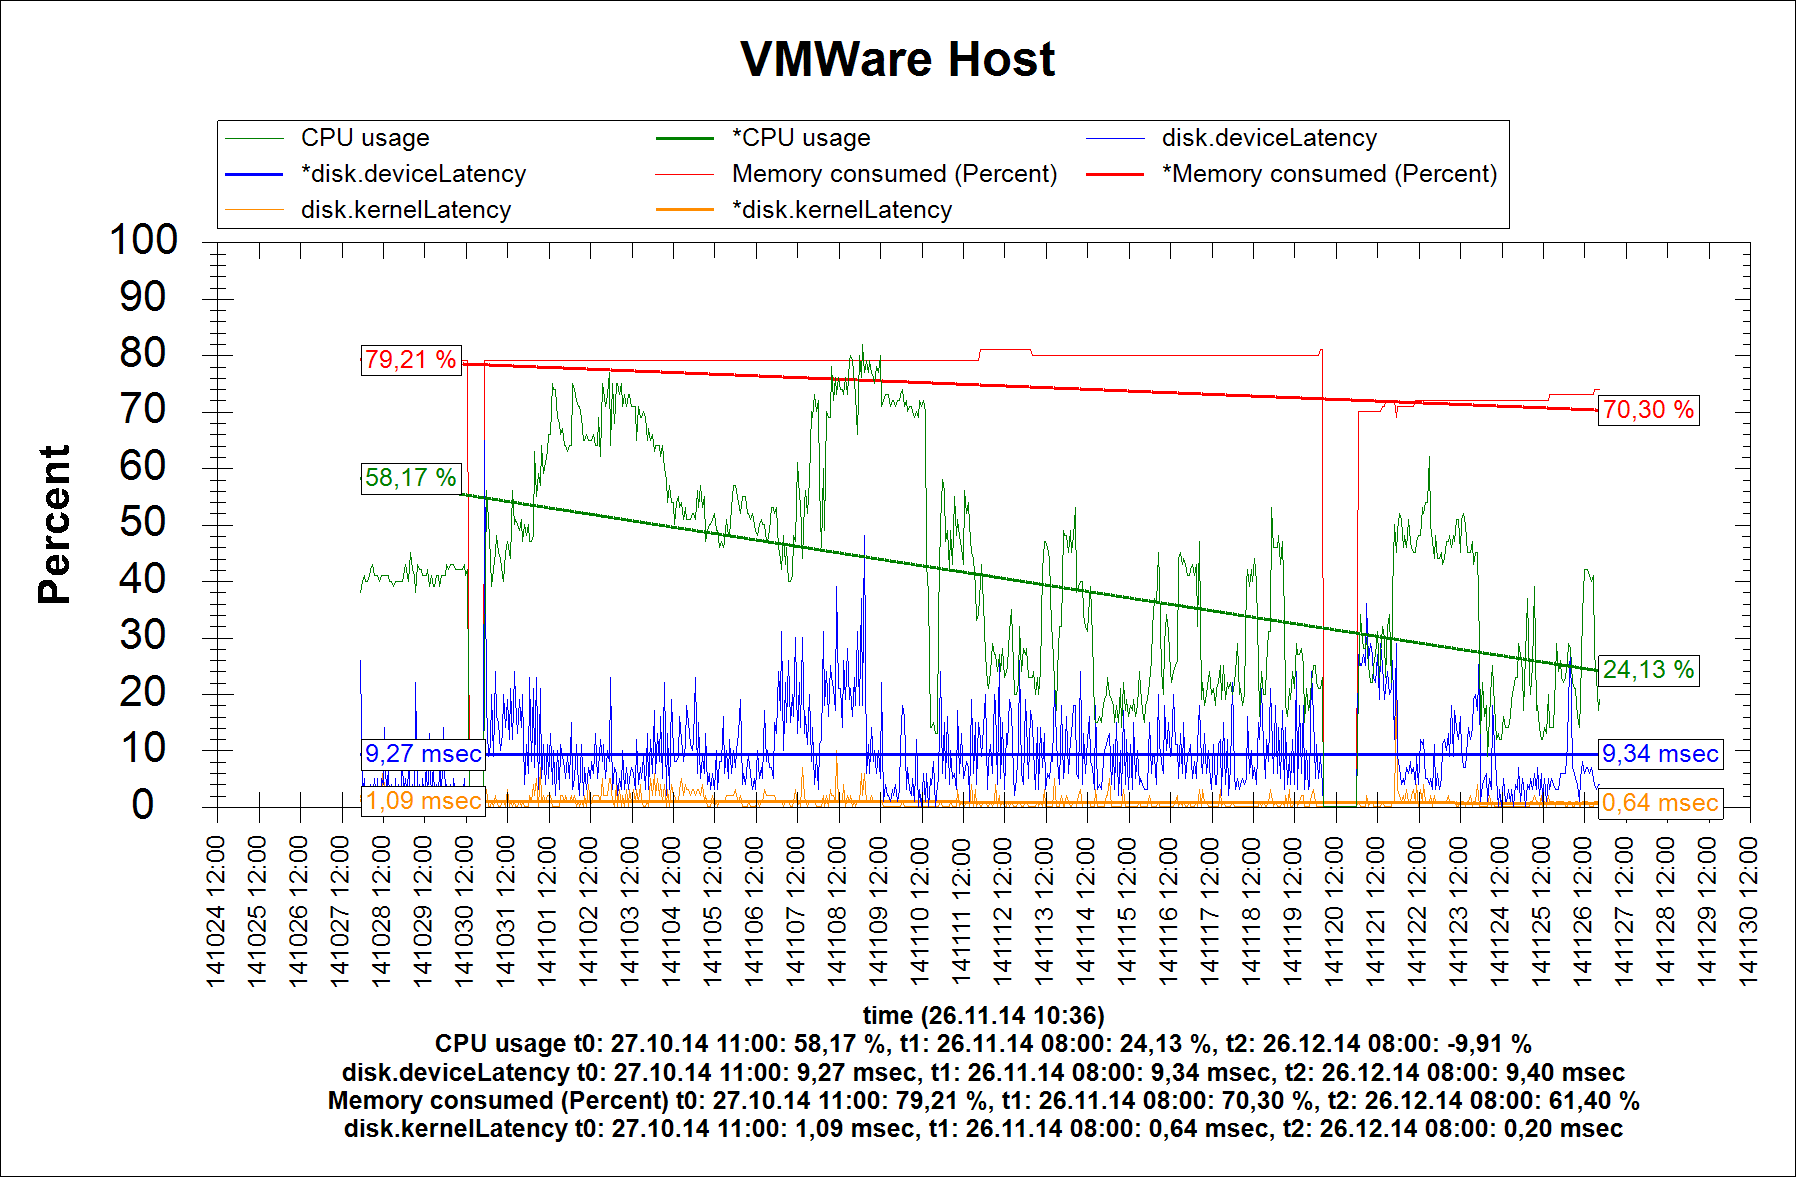 VMWare Host sensor 30 Days Trend without 'Trend Lines'